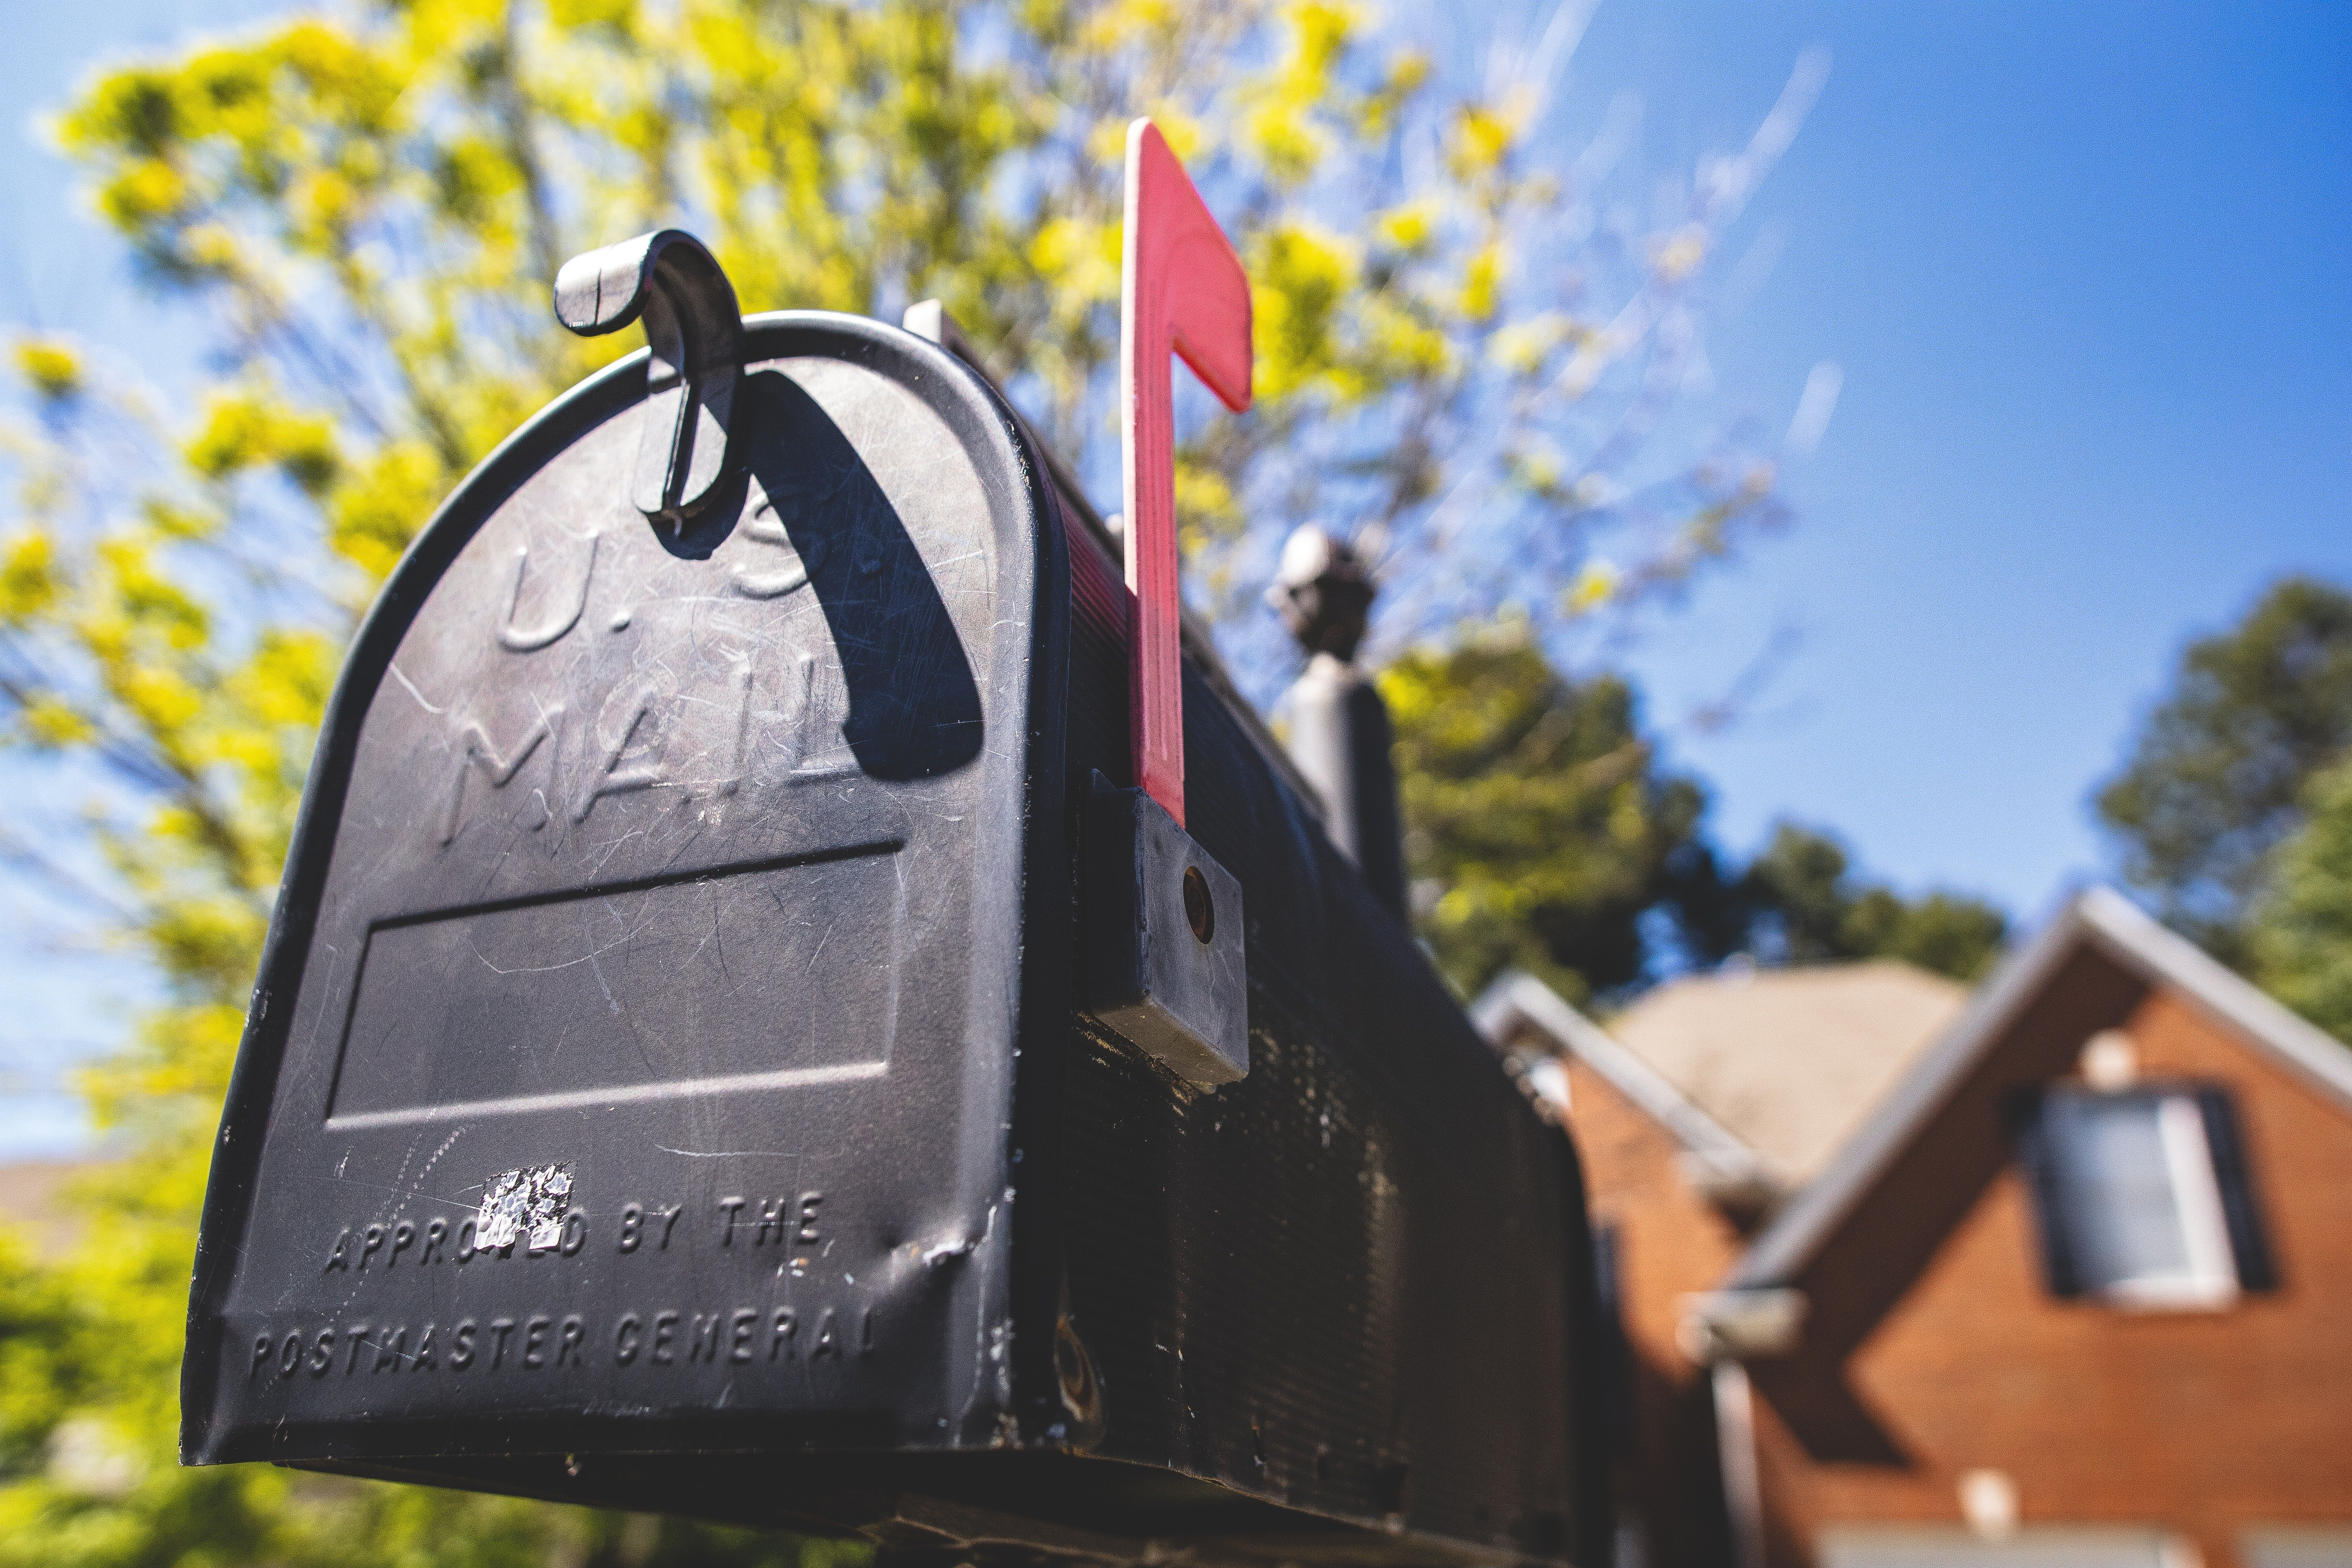 A mailbox. | Source: Pexels